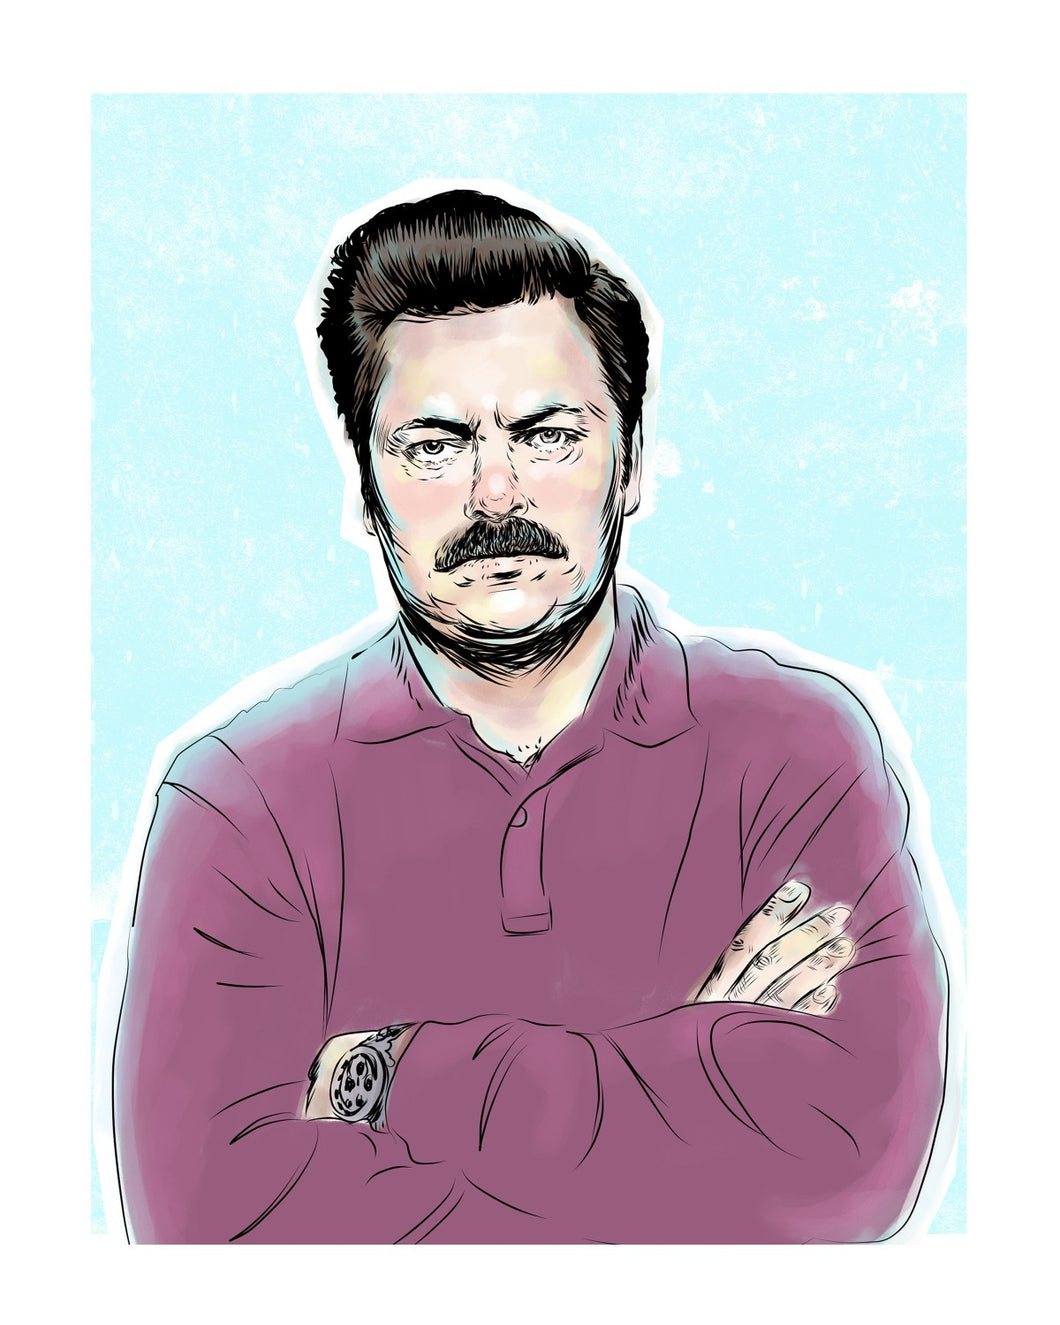 Ron Swanson (Parks and Recreation) 8x10 print